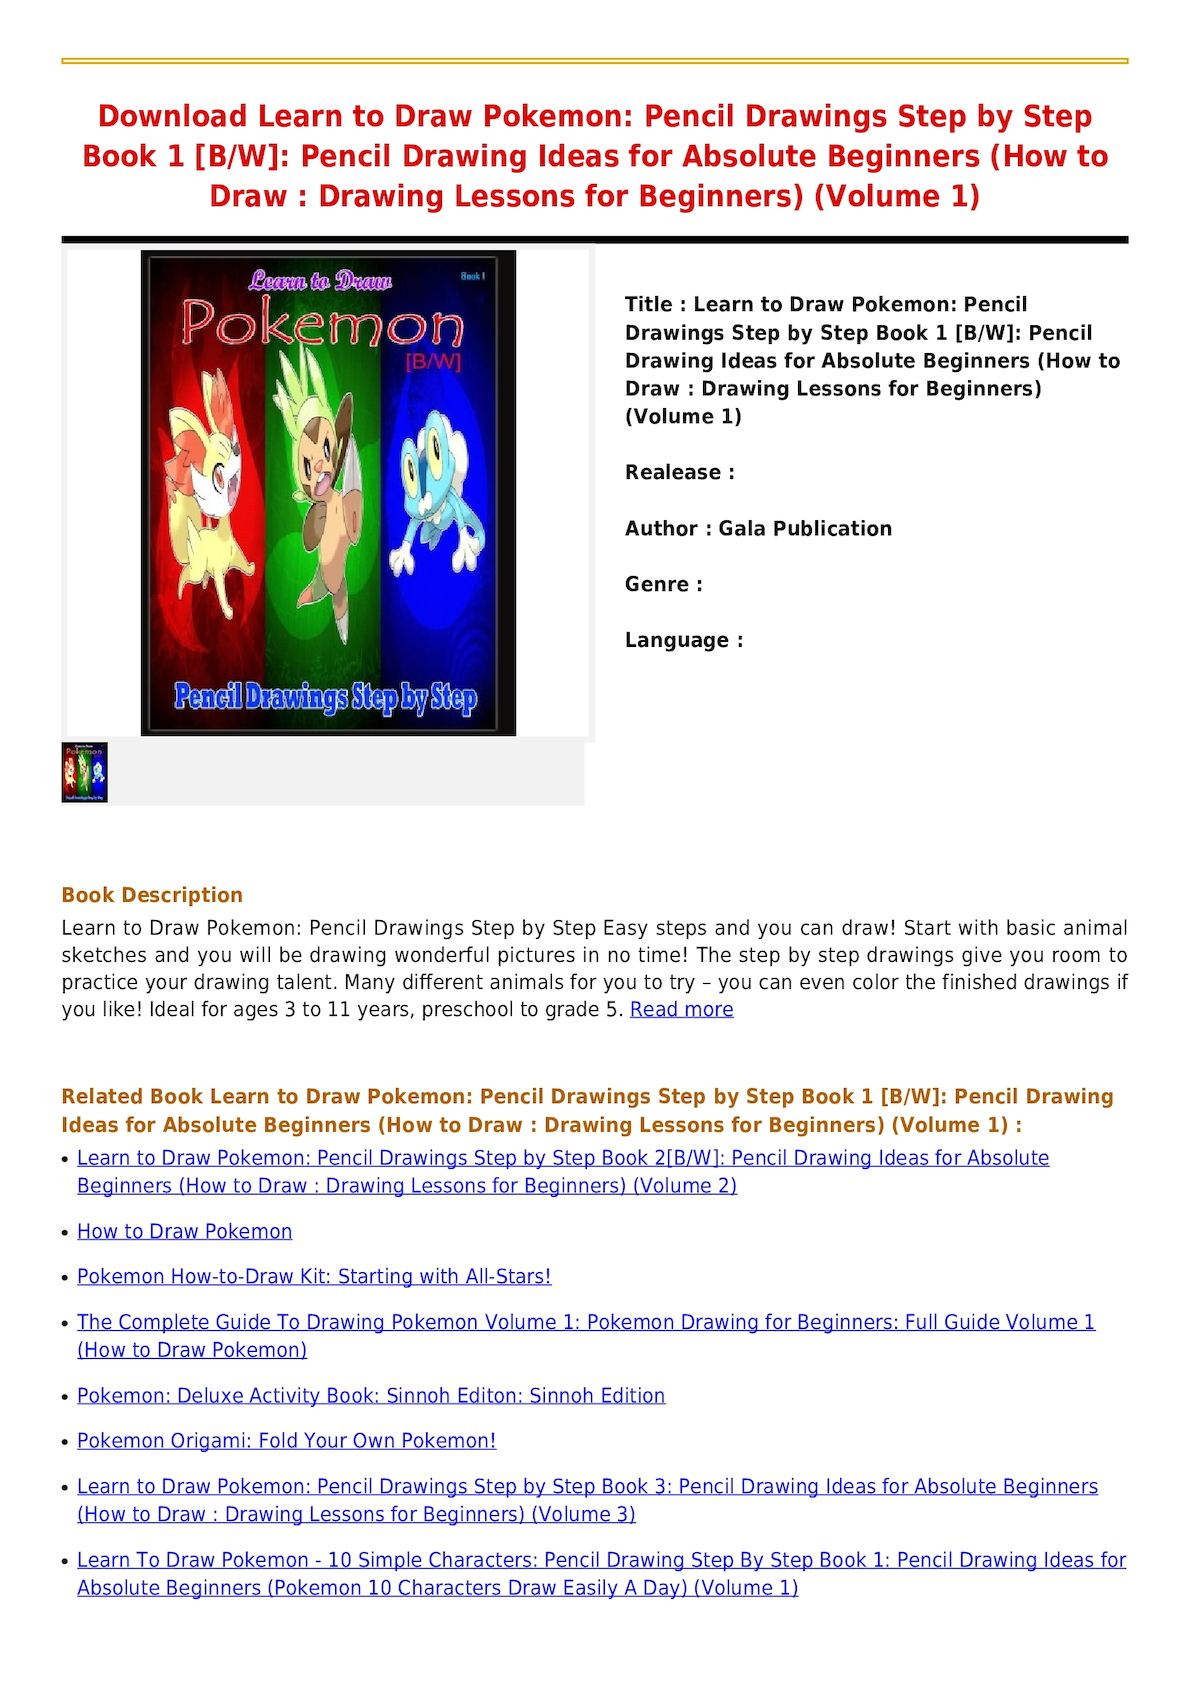 Download learn to draw pokemon pencil drawings step by step book 1 b w pencil drawing ideas for absolute beginners how to draw drawing lessons for